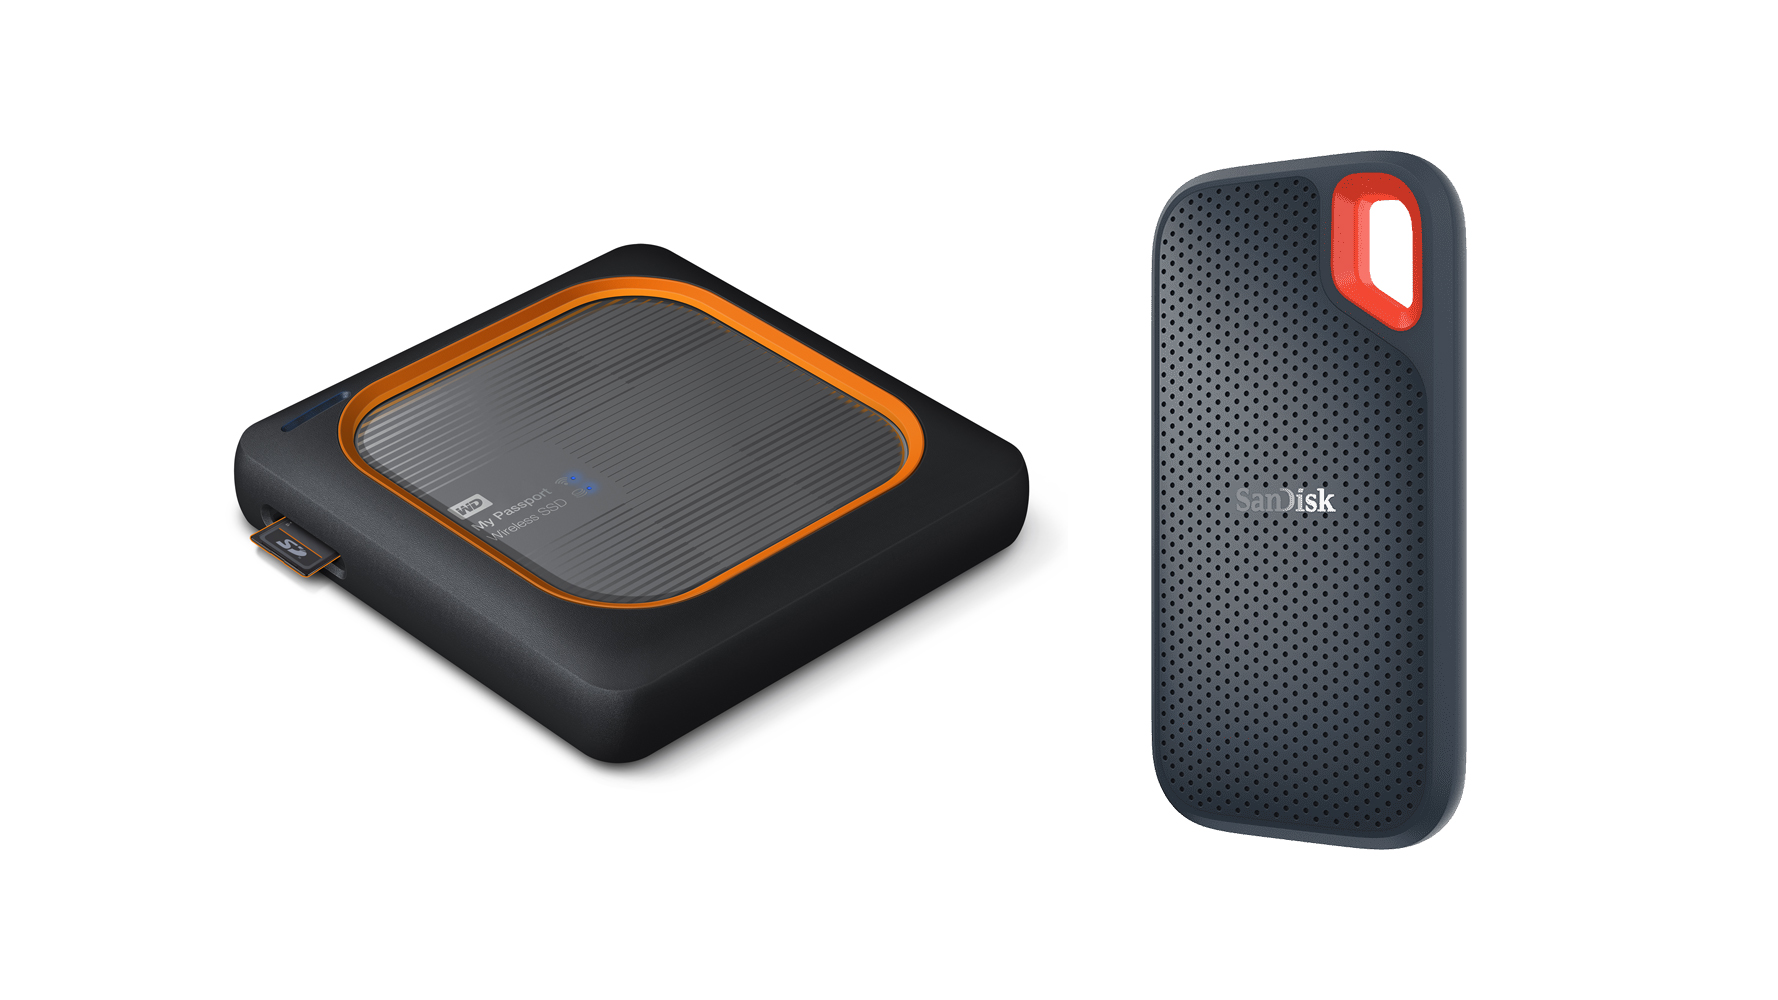 Wd Launches Two New Portable Ssds Designed For Photographers And Case Hard Disk External Samsung F2 Usb 30 Drone Users Digital Photography Review